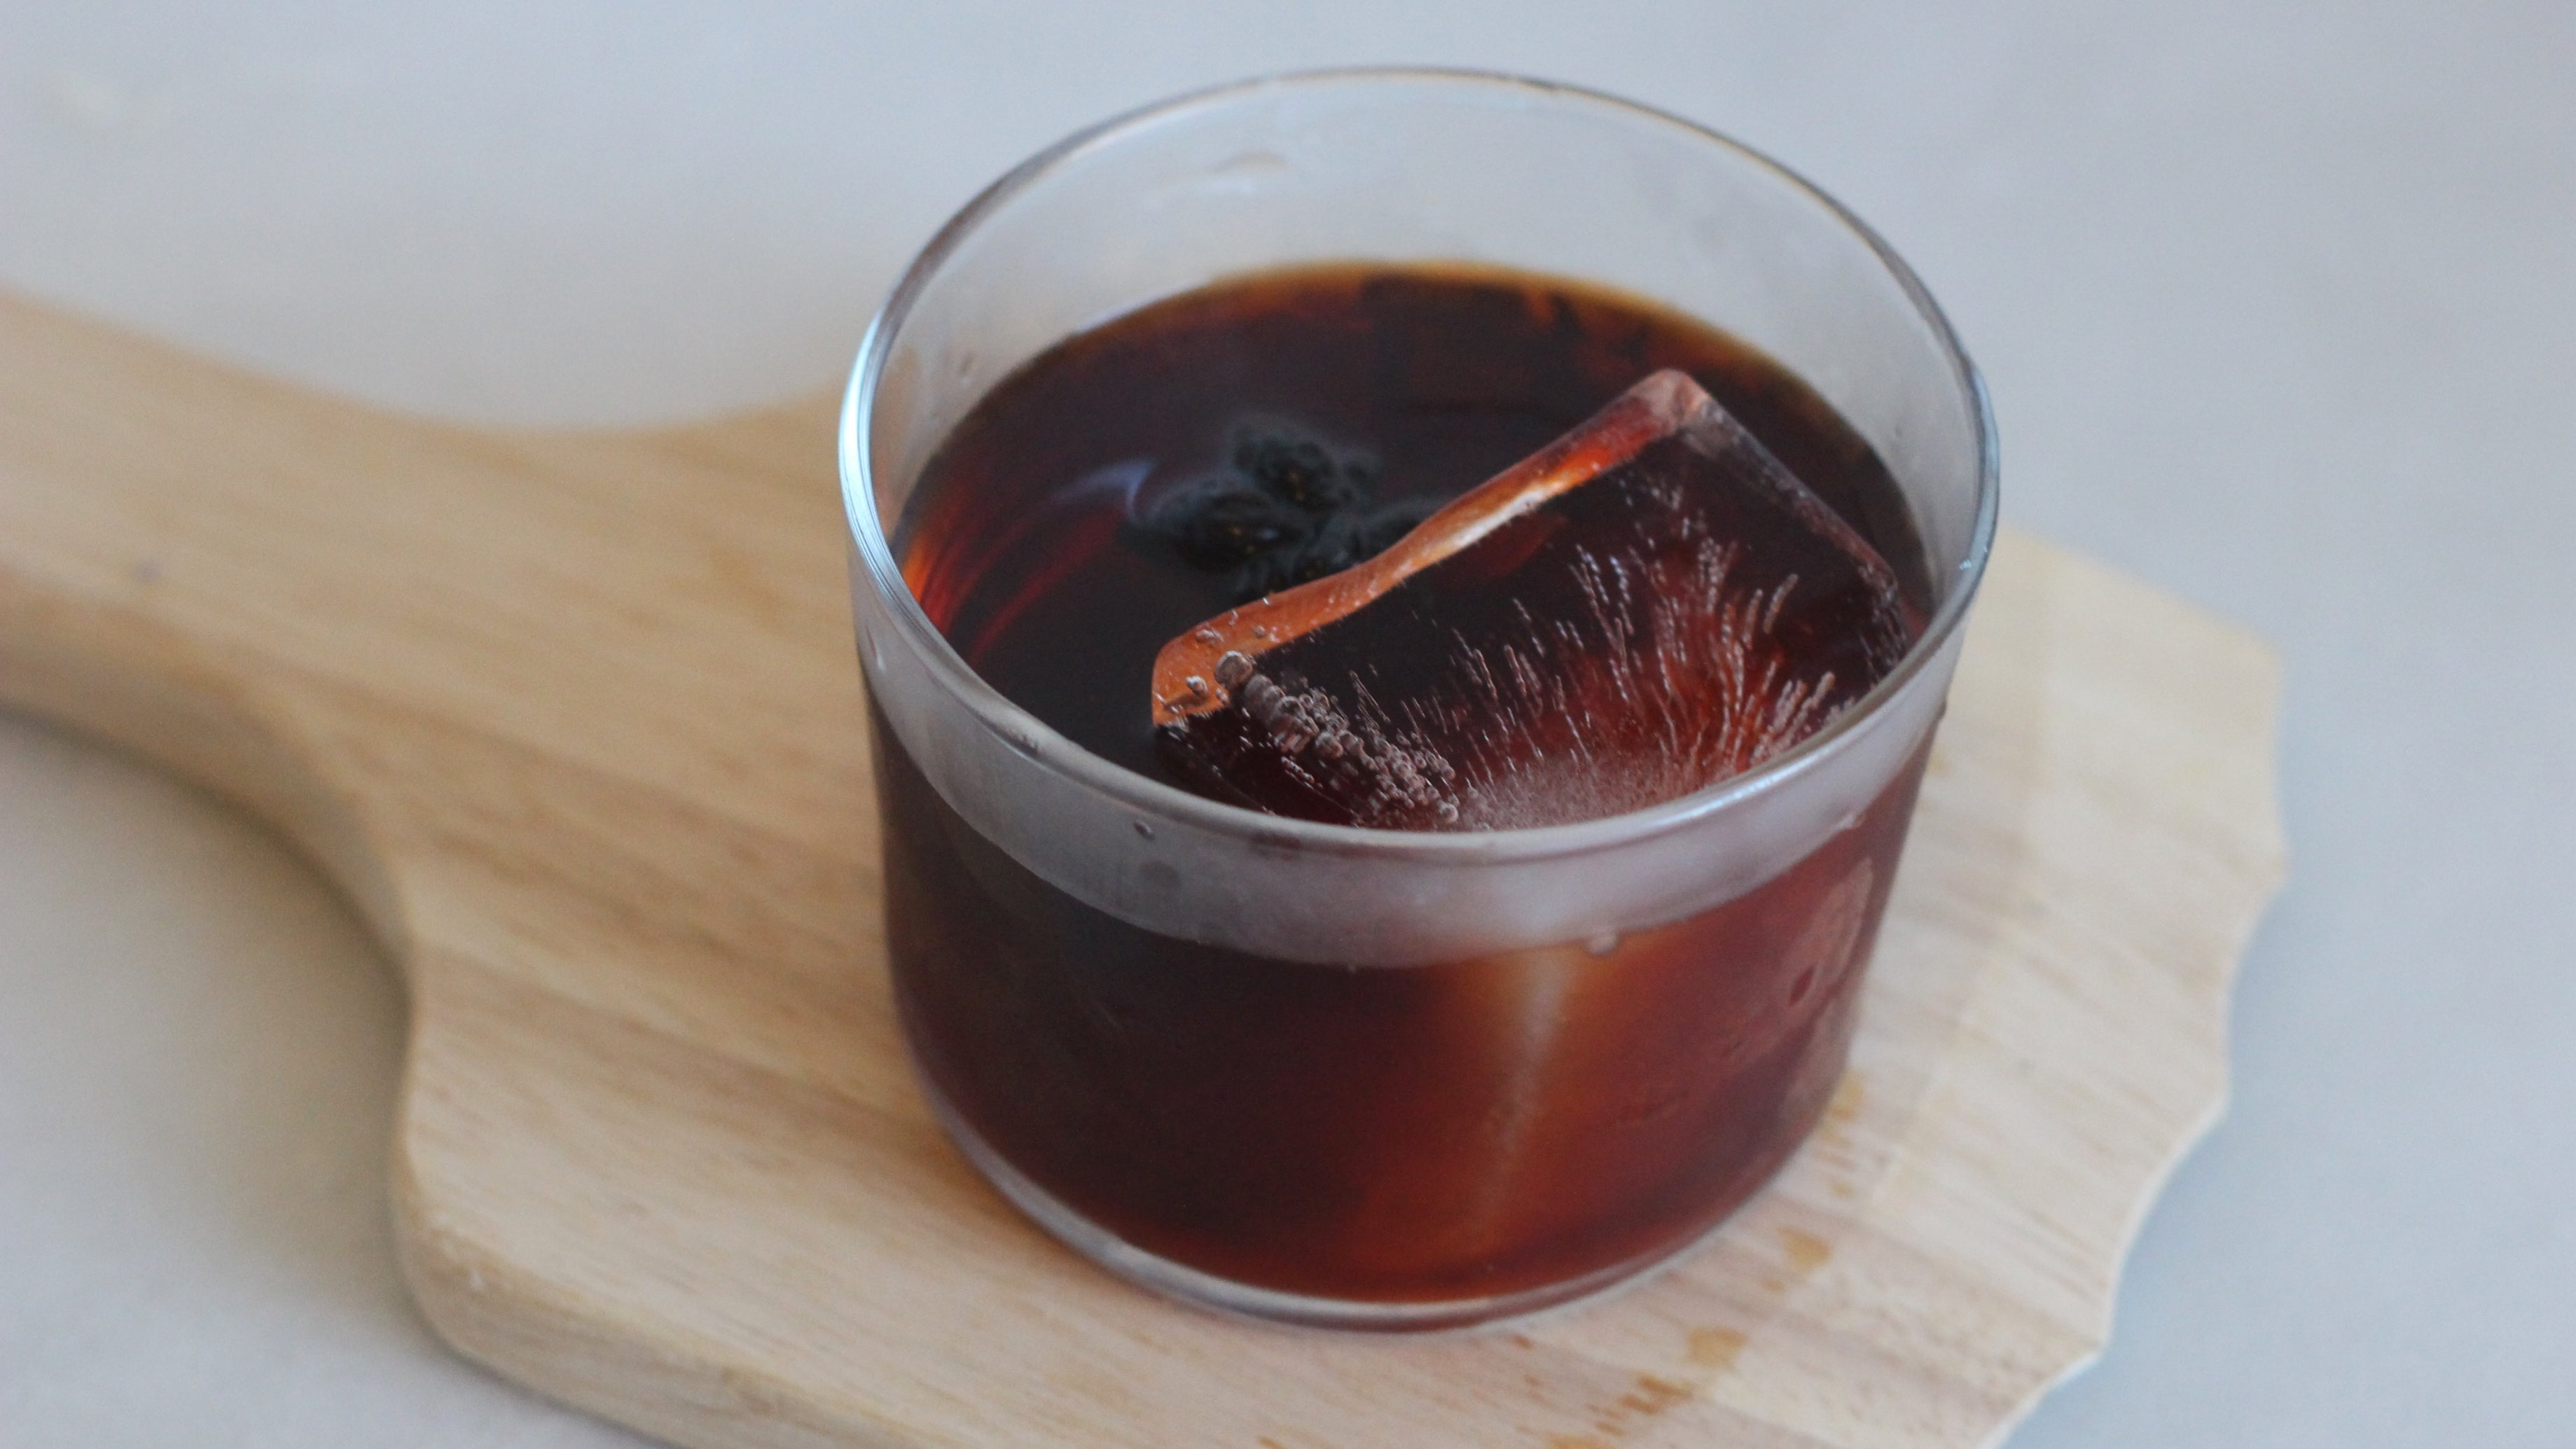 How To Make A Smoked Cocktail Indoors